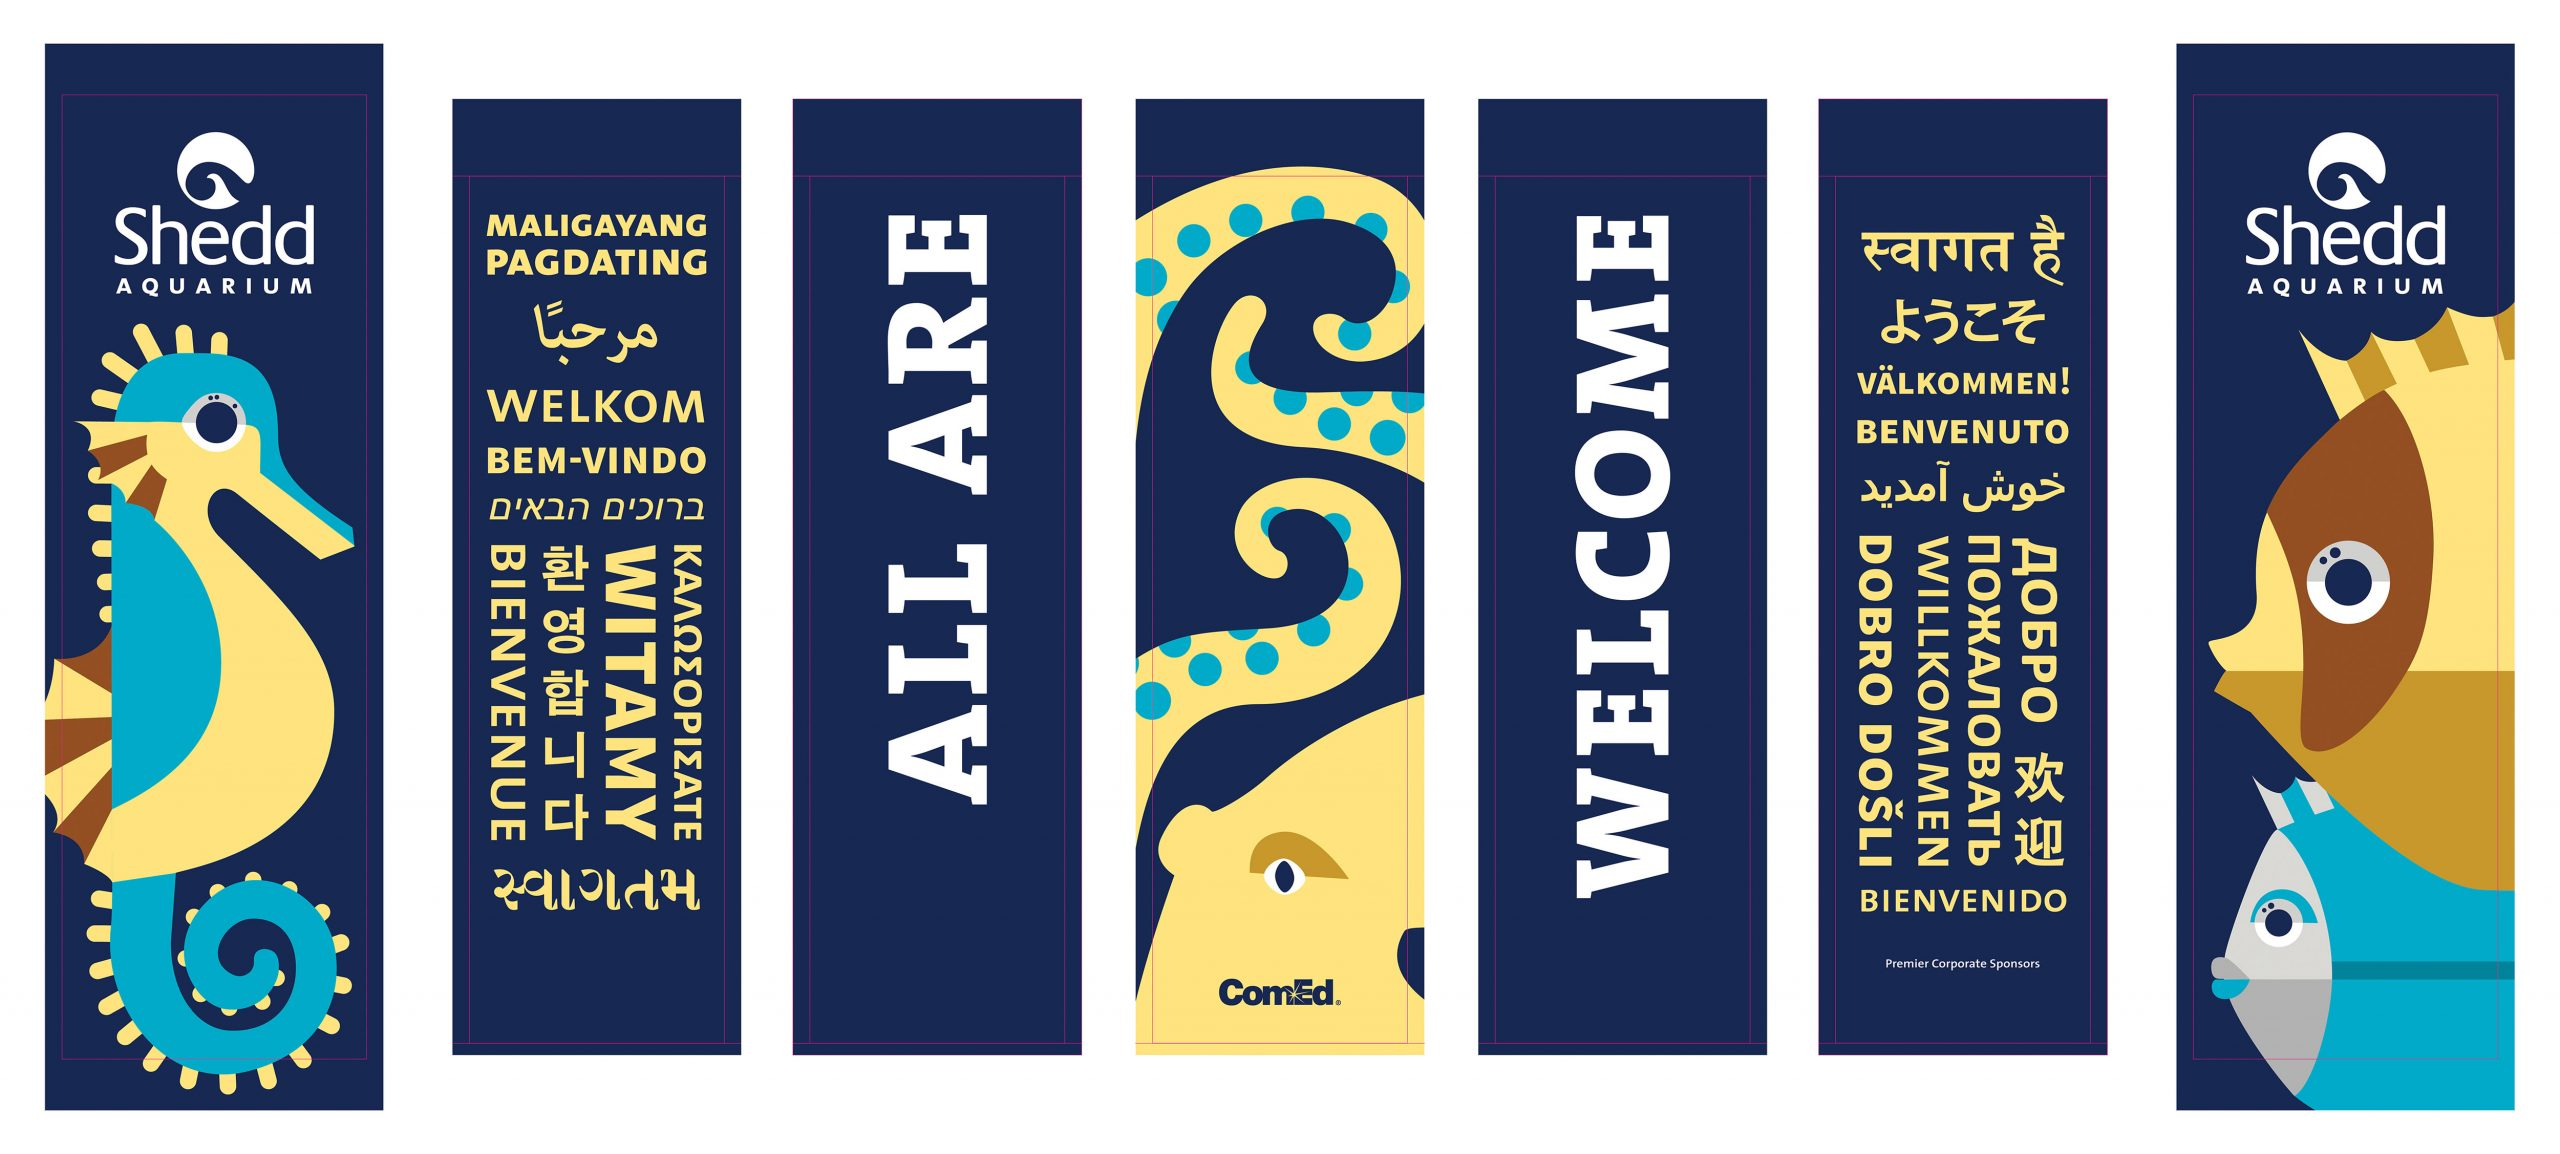 Seven vertical banner designs reading 'All Are welcome' in many languages and framed by geometric illustrations of a seahorse, an octopus and two fish.